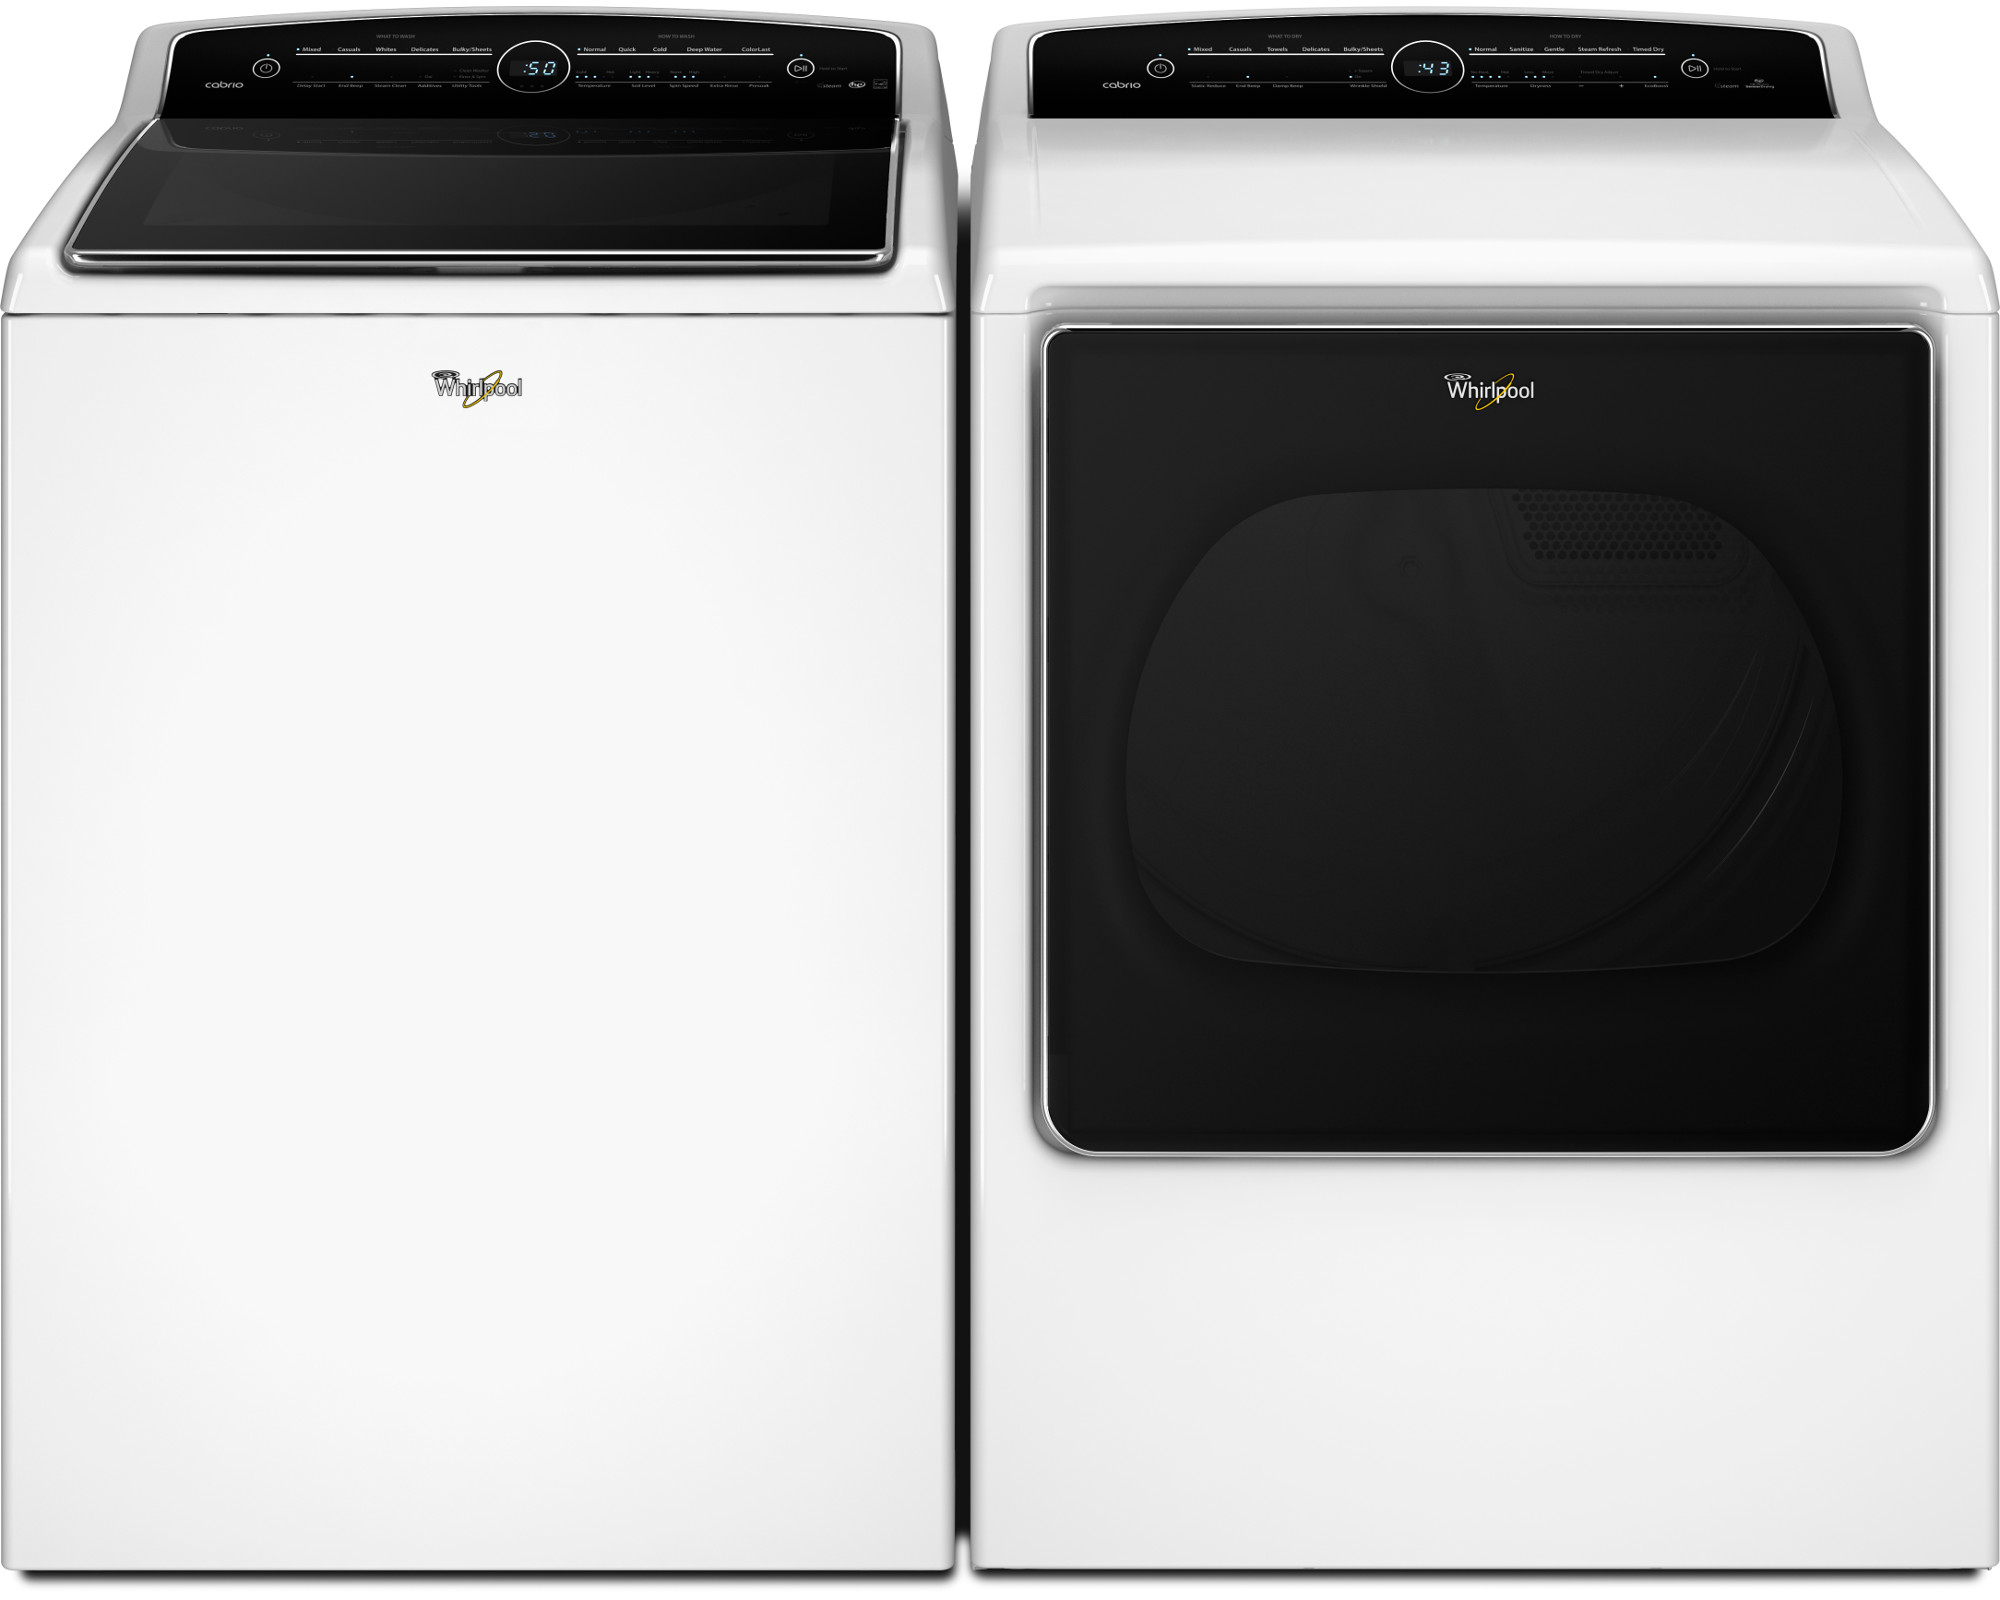 Whirlpool WTW8500DW 5.3 cu. ft. Cabrio® Top Load Washer w/ Intuitive Touch Controls - White